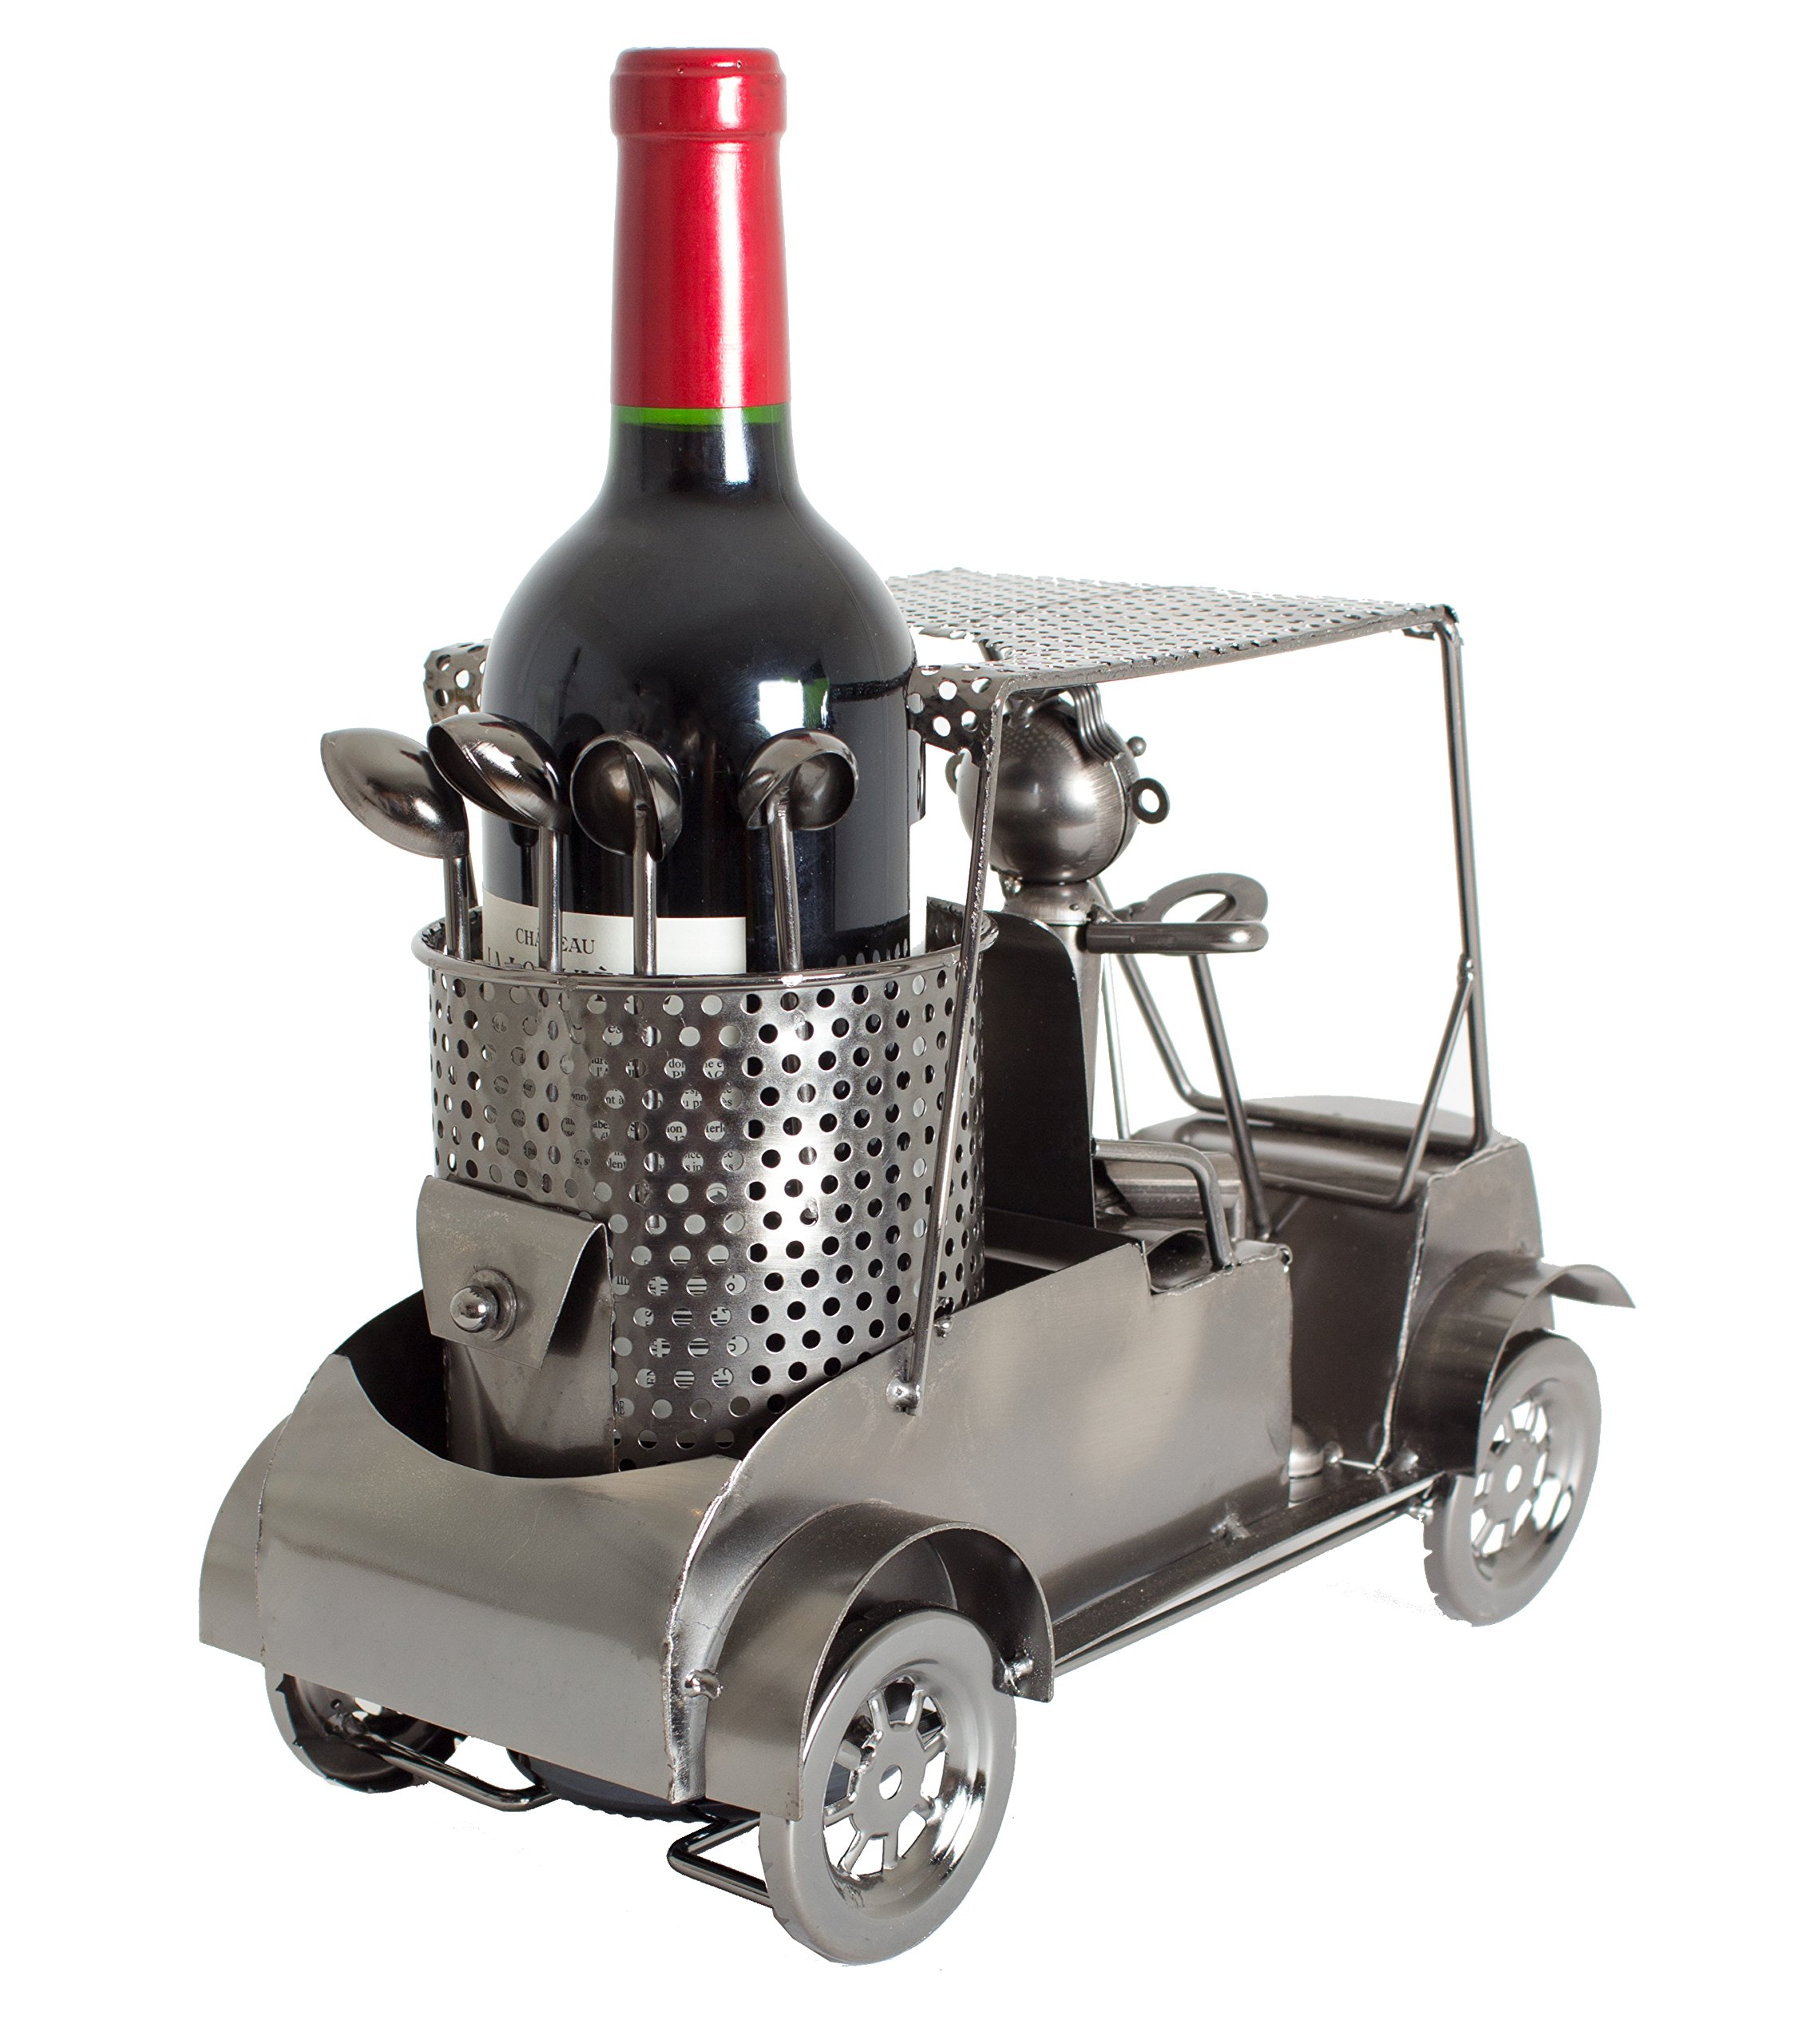 BRUBAKER Wine Bottle Holder Statue Golfer in A Golf Cart Sculptures and Figurines Decor & Vintage Wine Racks and Stands Gifts Decoration by BRUBAKER (Image #2)